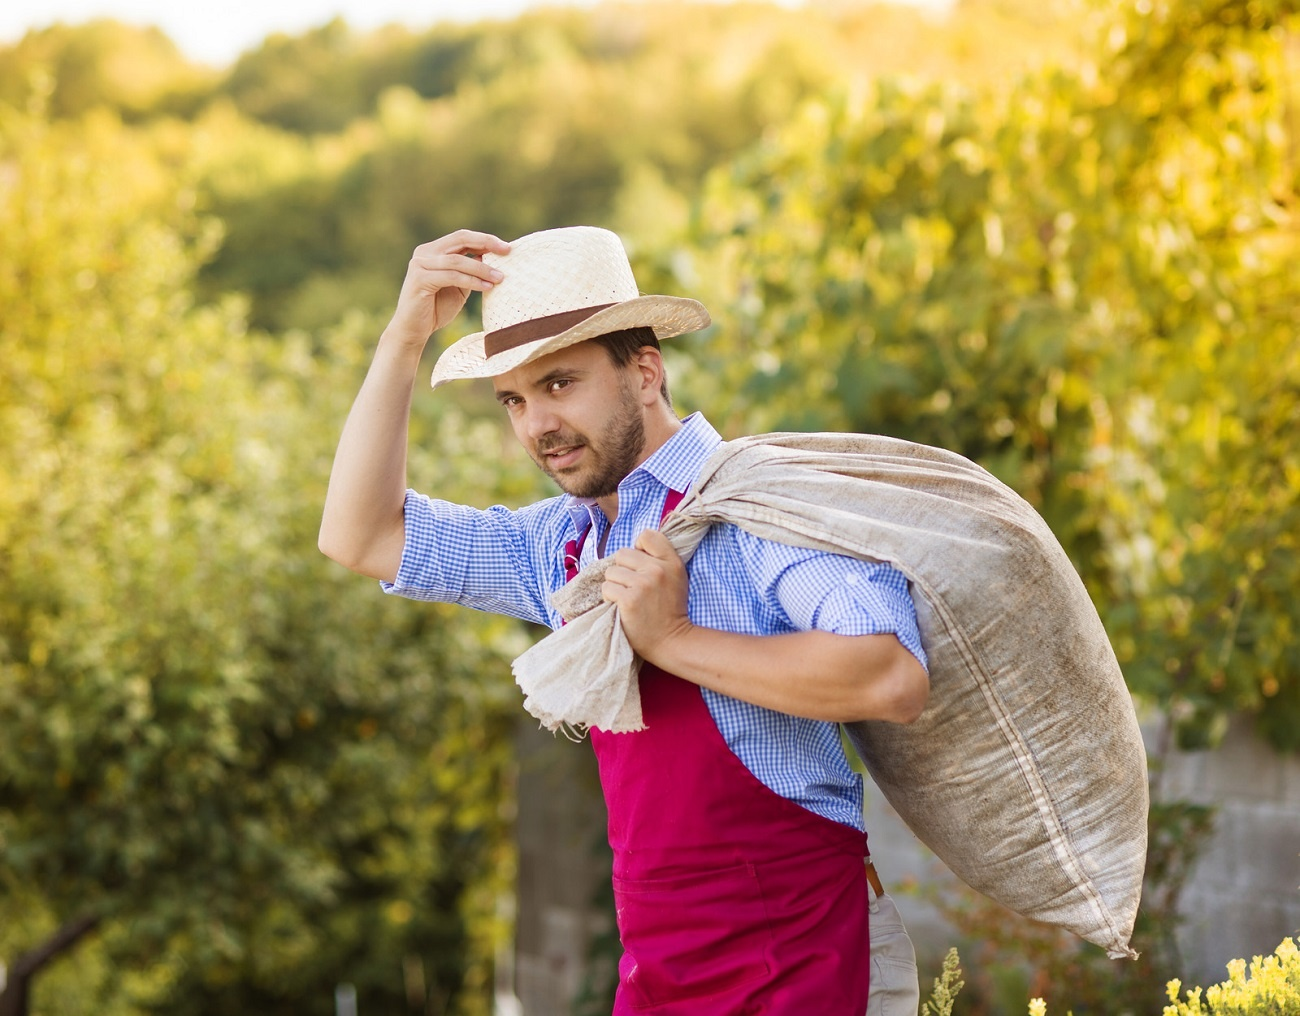 A farmer tips his hat as he walks home with a sack of grain.